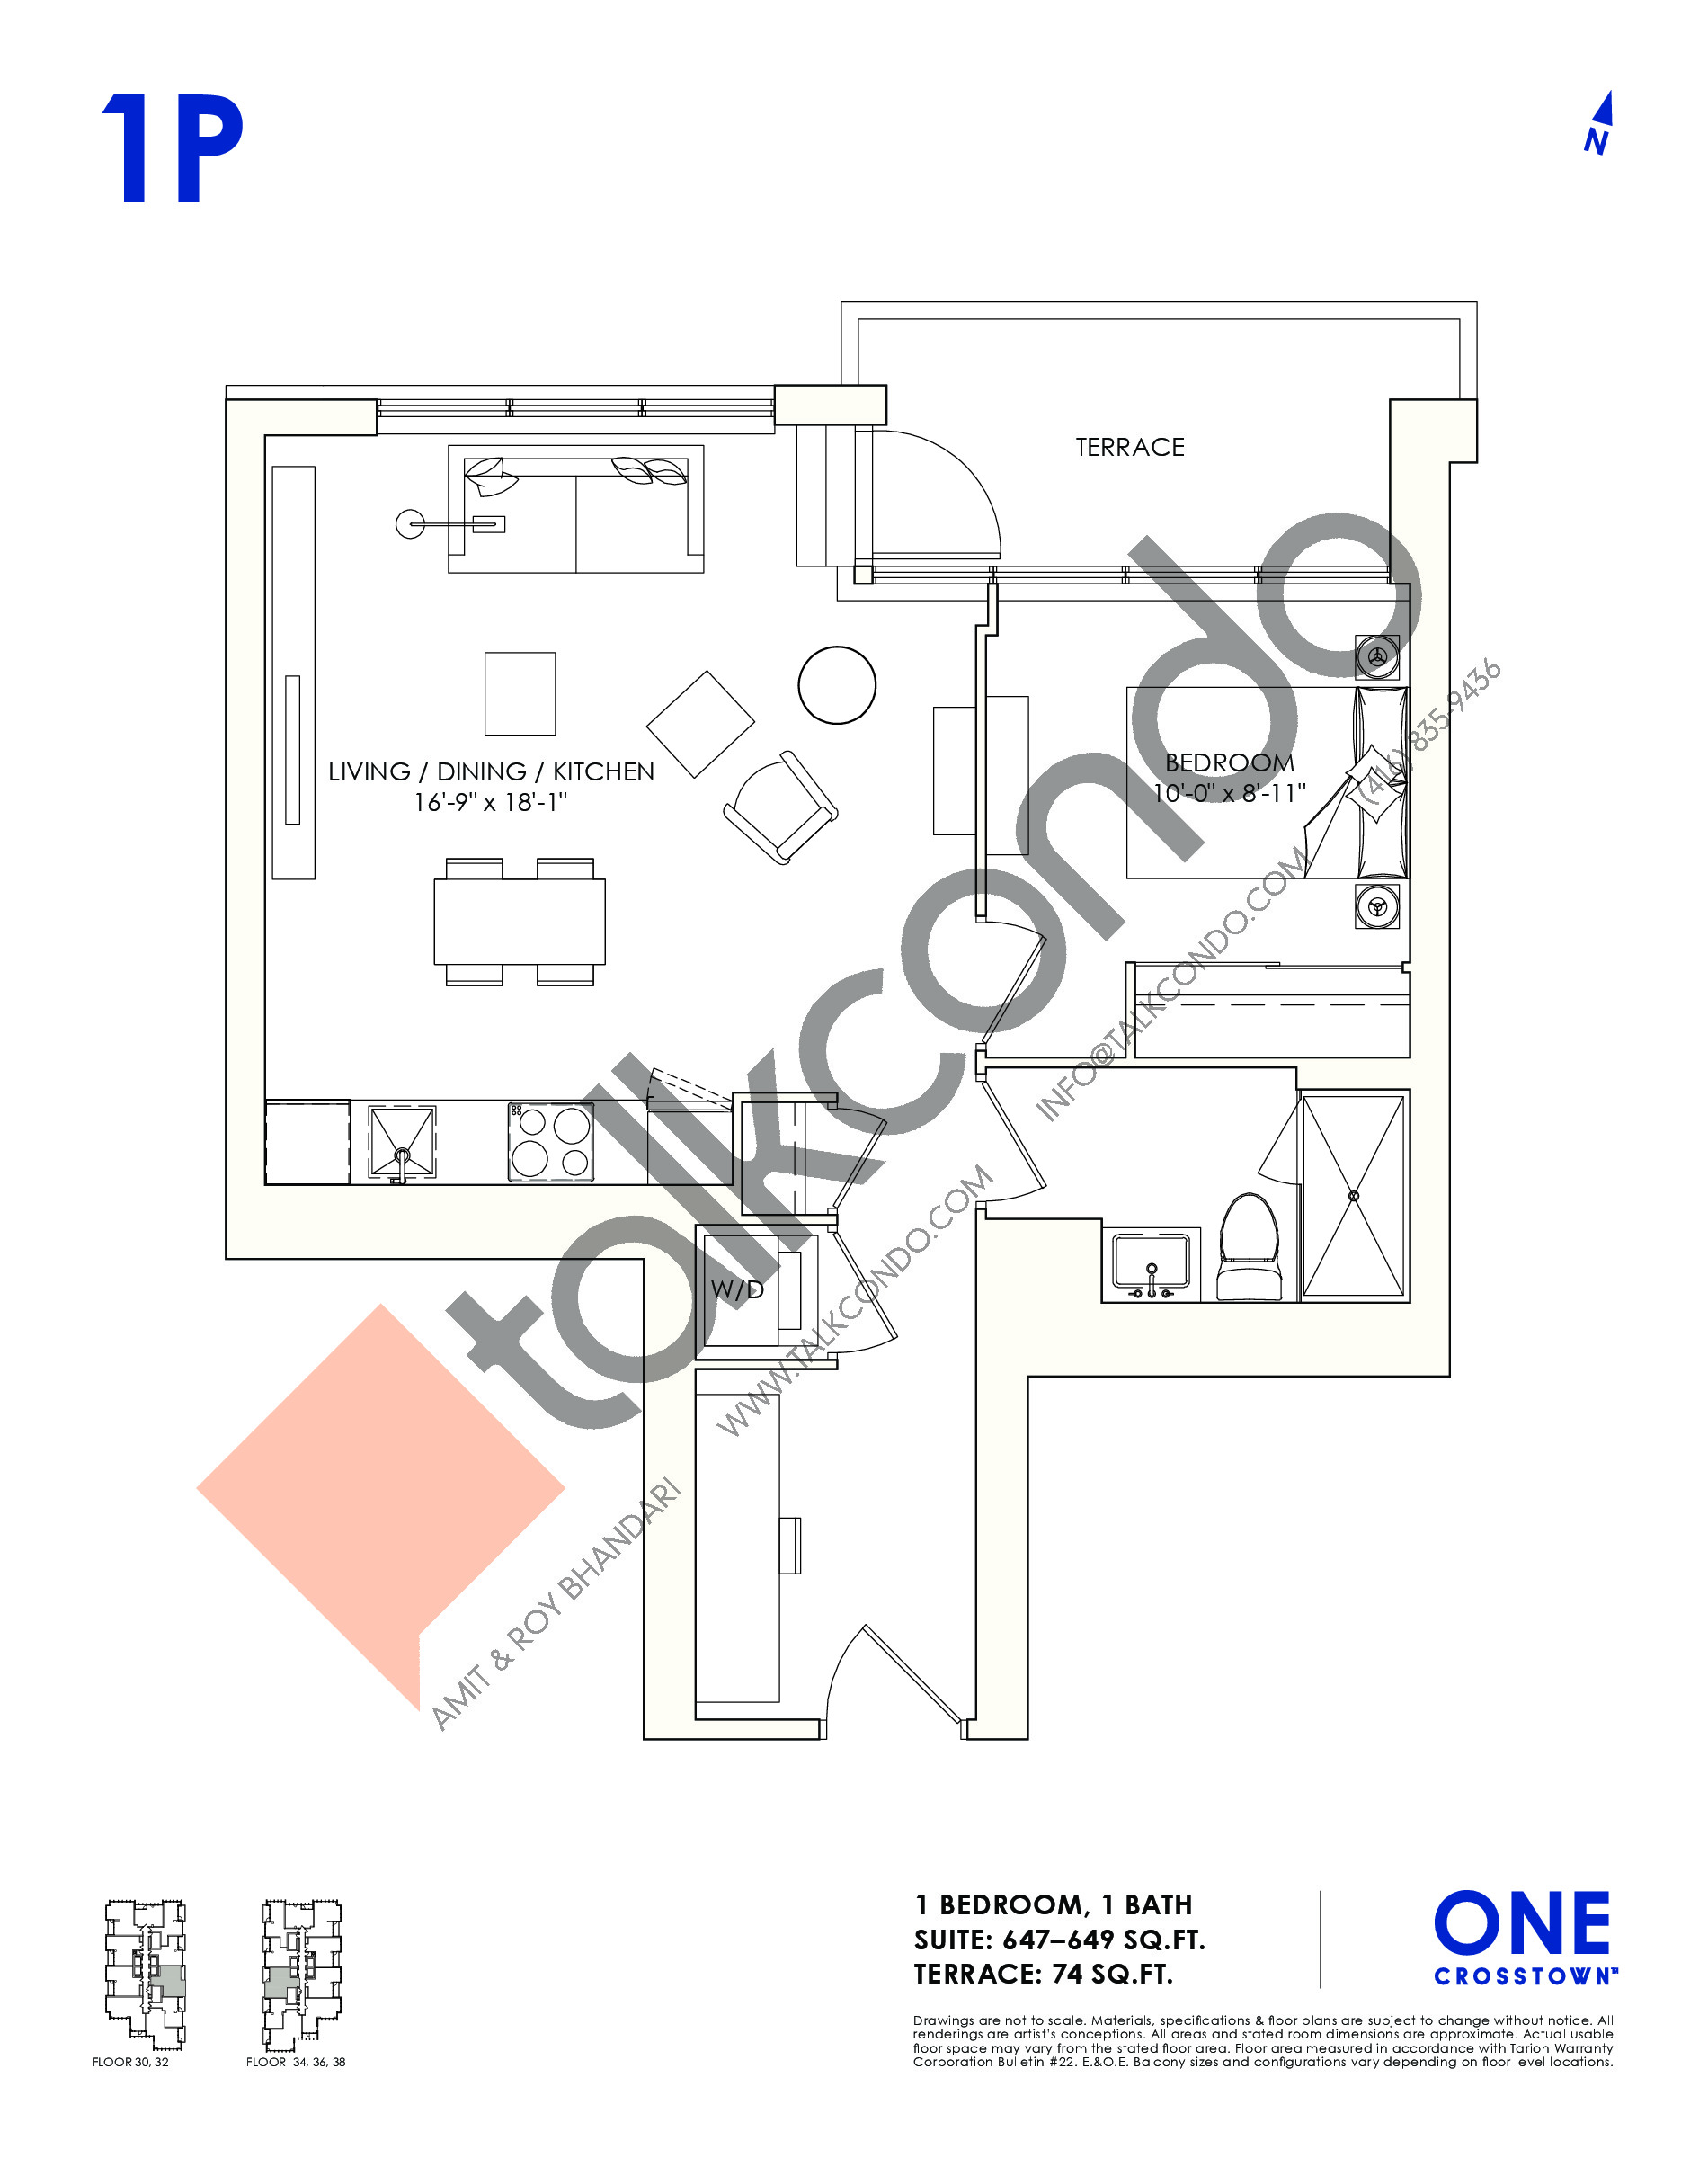 1P Floor Plan at One Crosstown Condos - 649 sq.ft